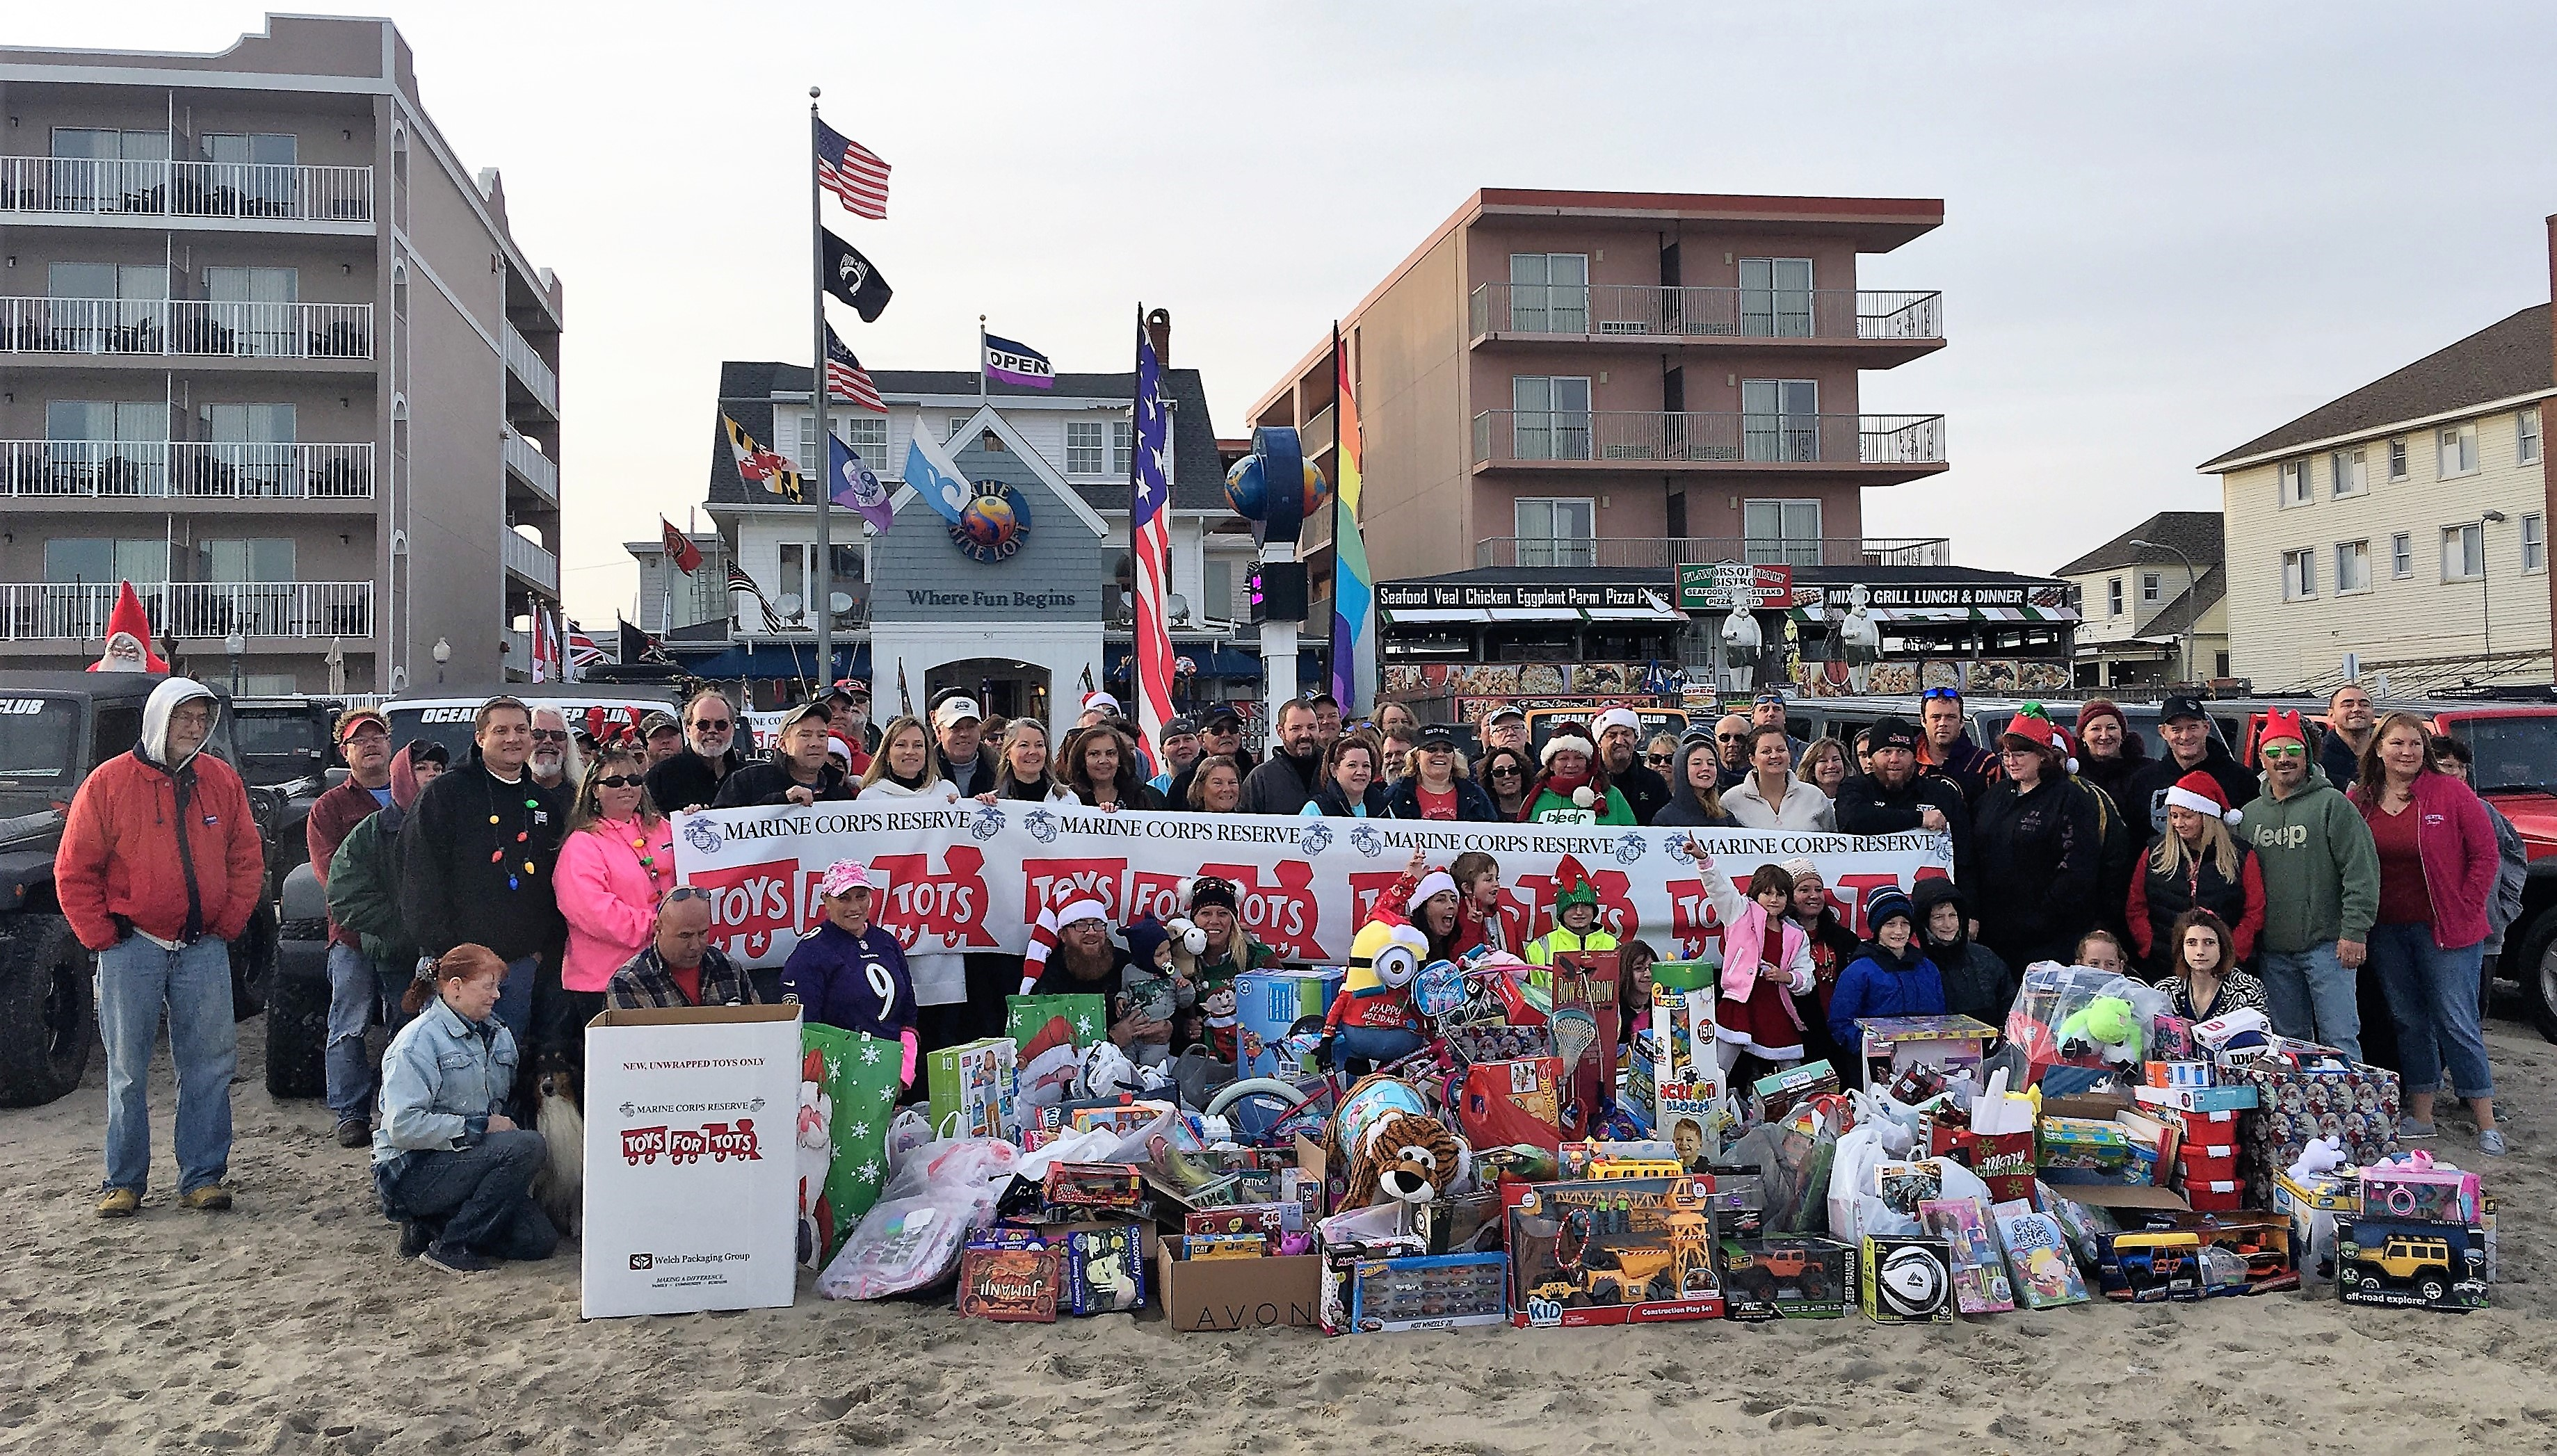 Jeep Club's Second Beach Run Brings In 300 Donations For Toys For Tots Campaign